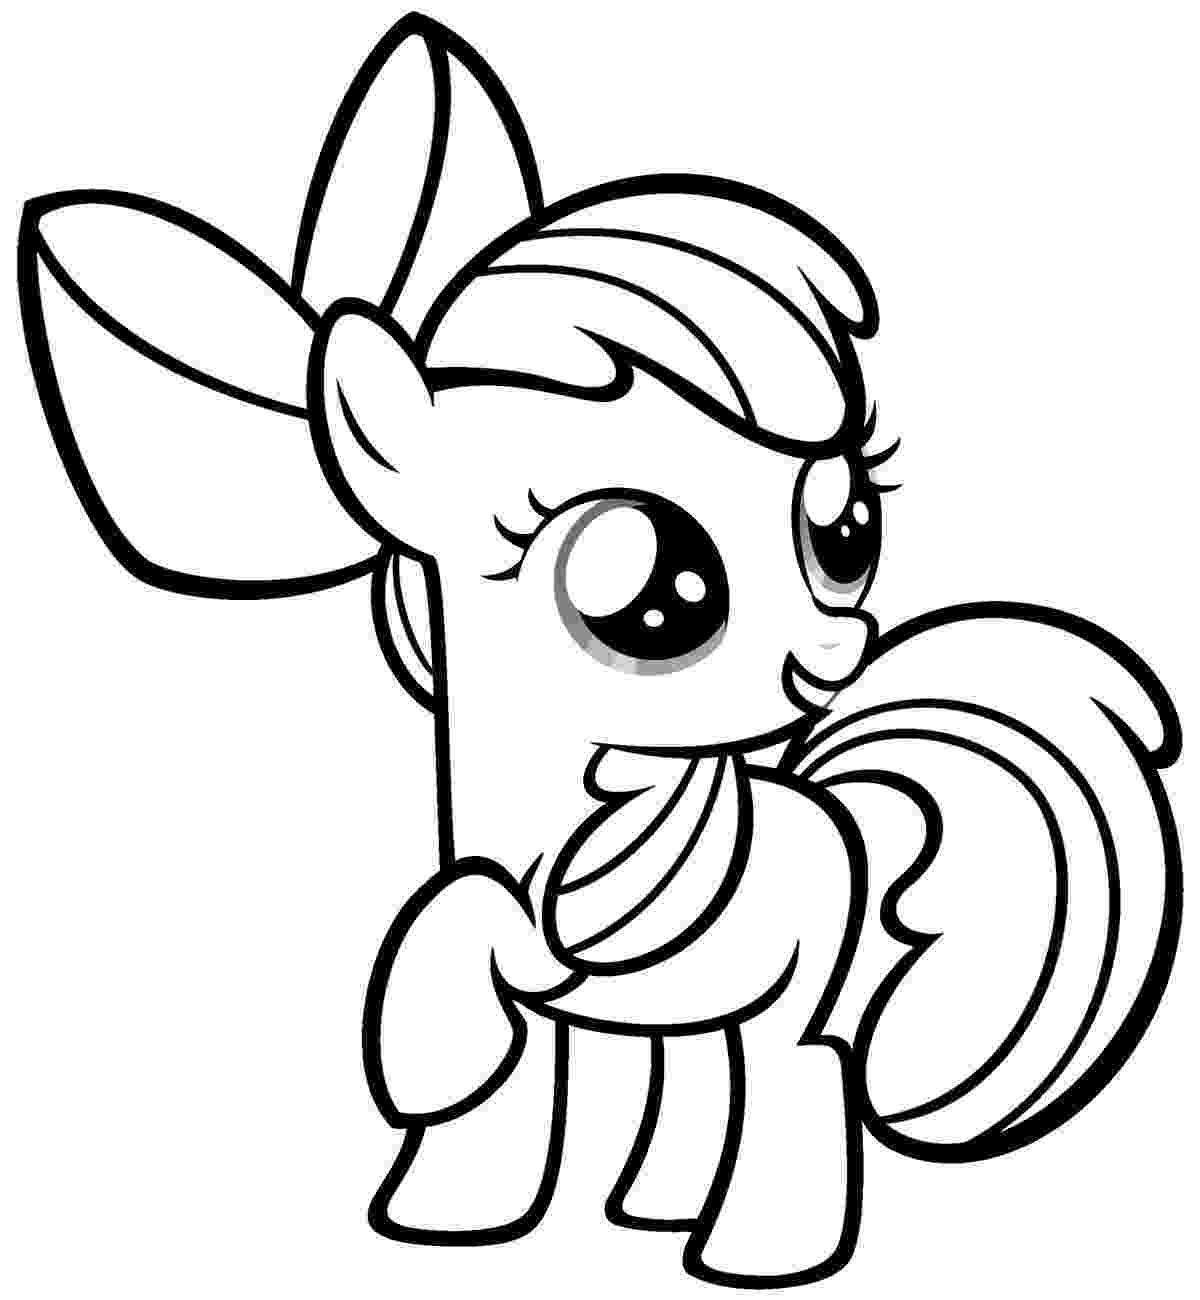 my little pony free printables free printable my little pony coloring pages for kids my my printables little pony free